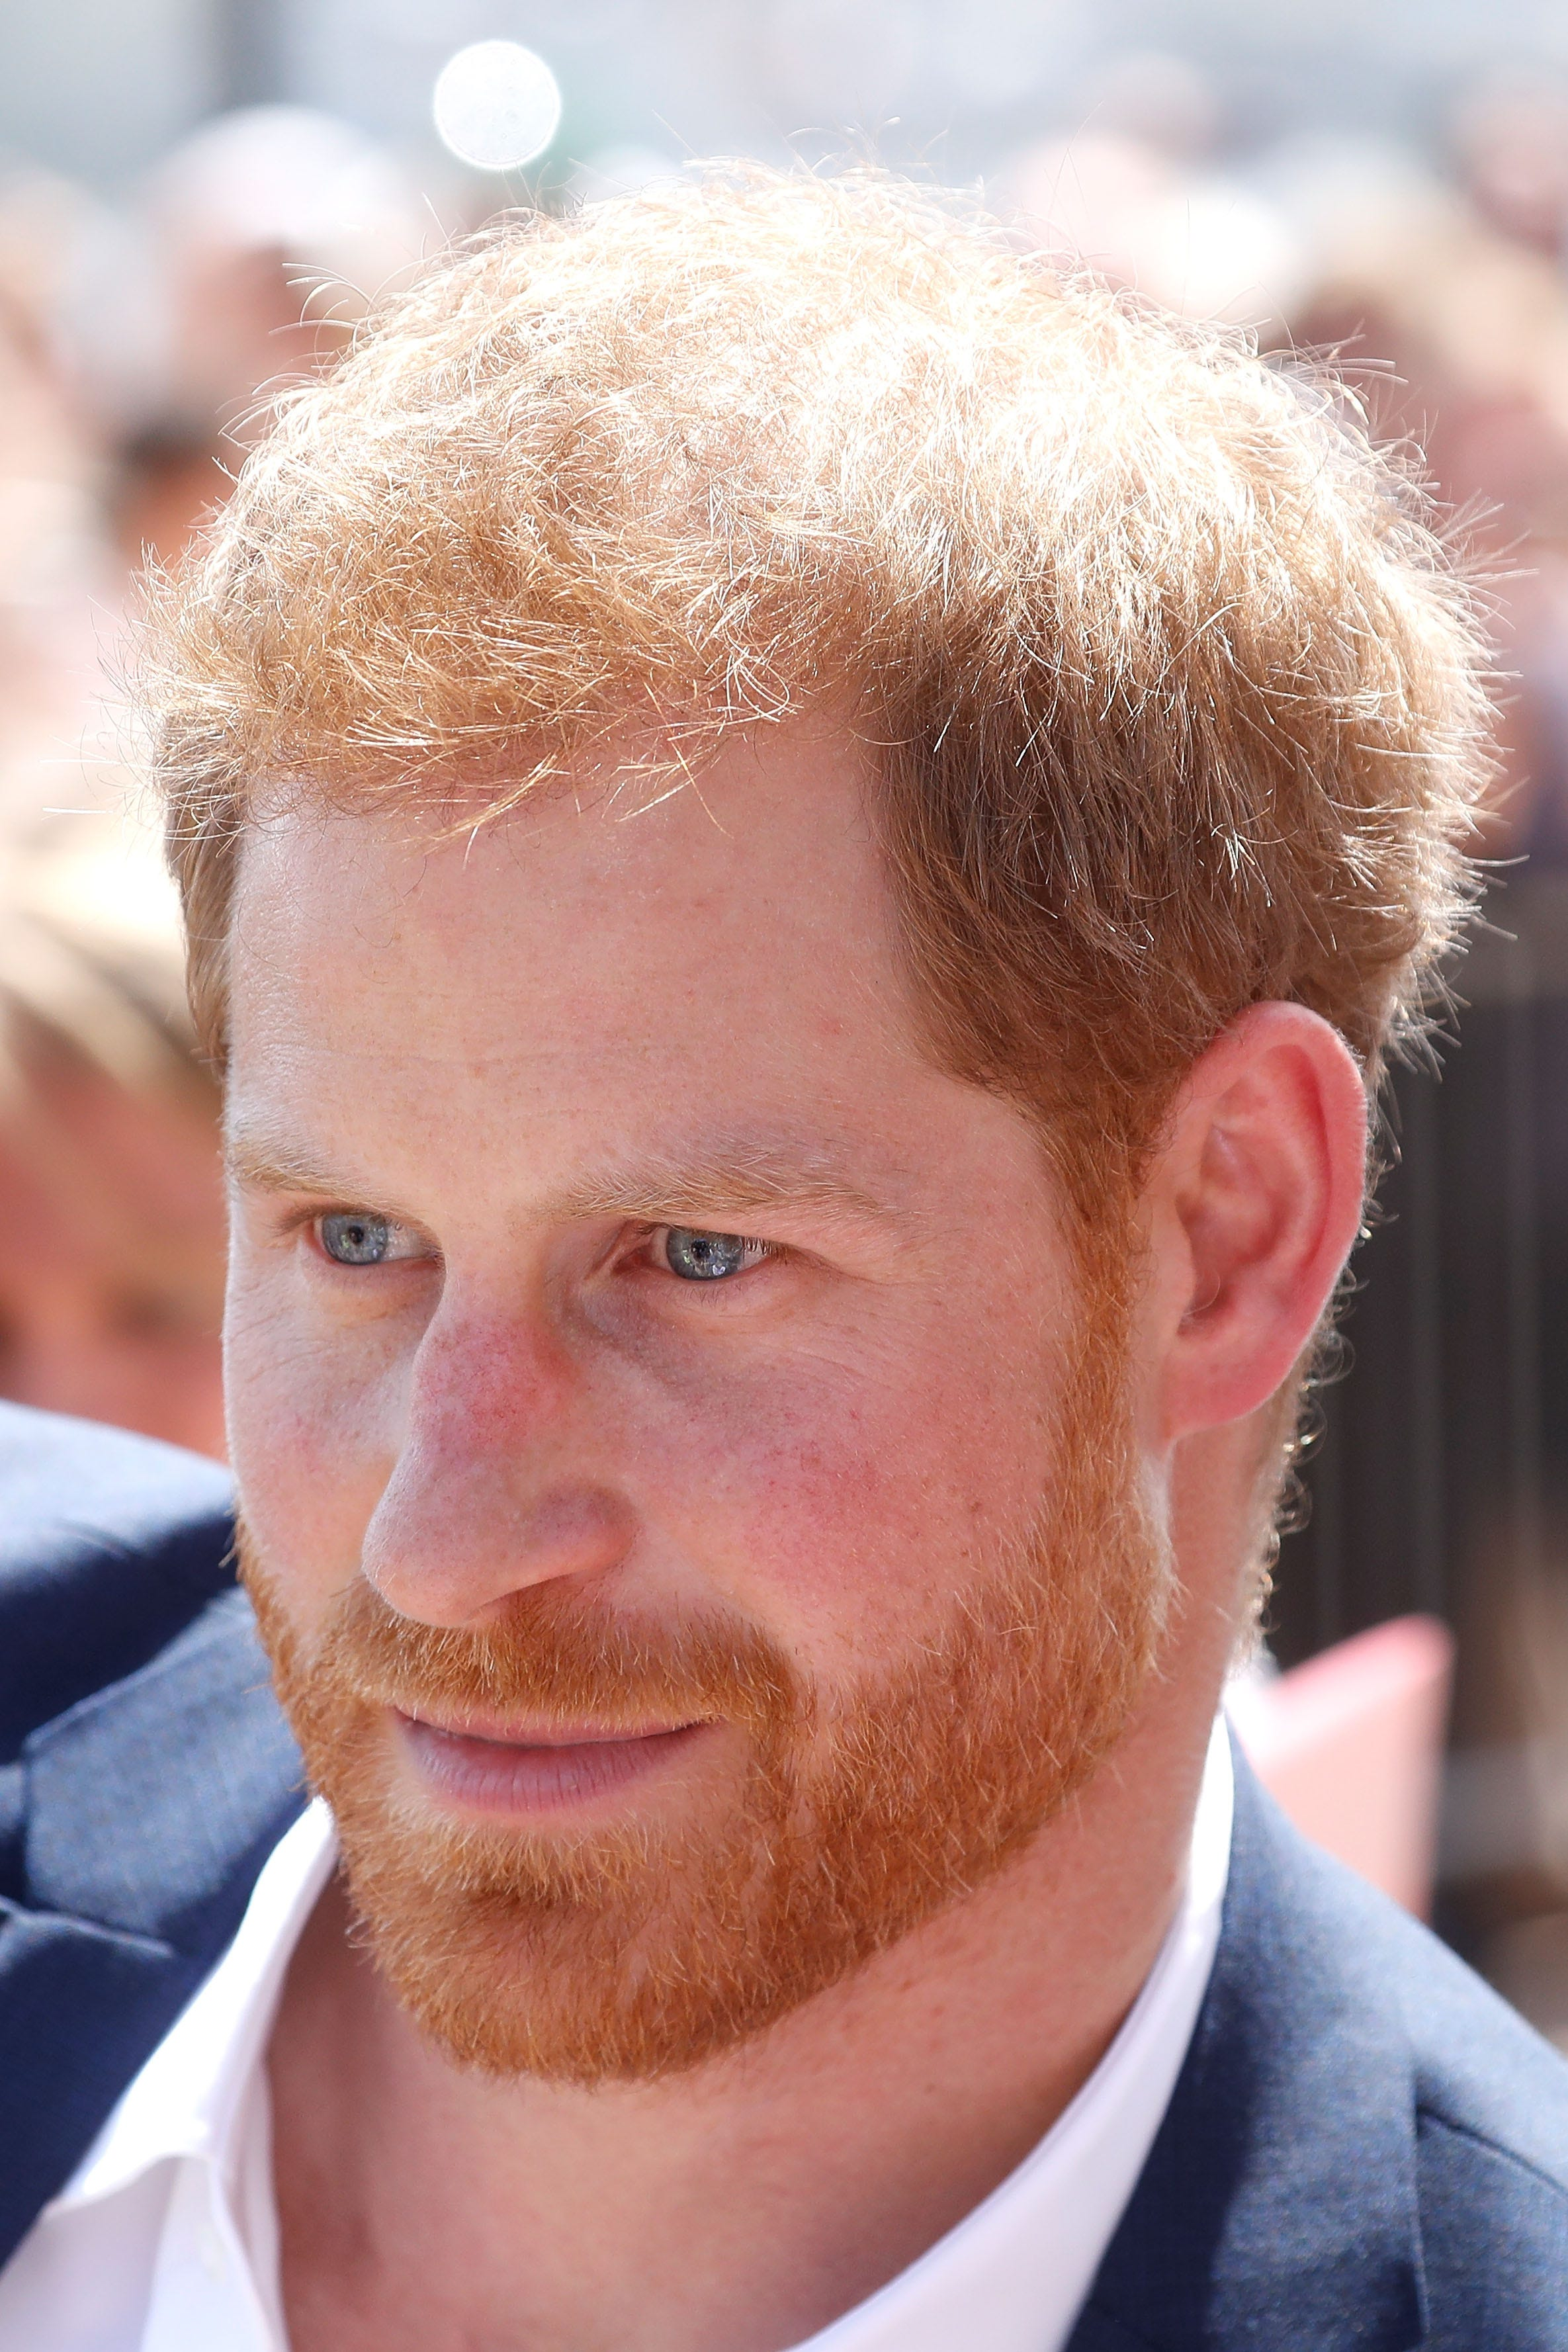 Prince Harry greets fans at the Sydney Opera House on Oct. 16, 2018 in Sydney, Australia, at start of the Duke and Duchess of Sussex's 16-day tour Down Under.